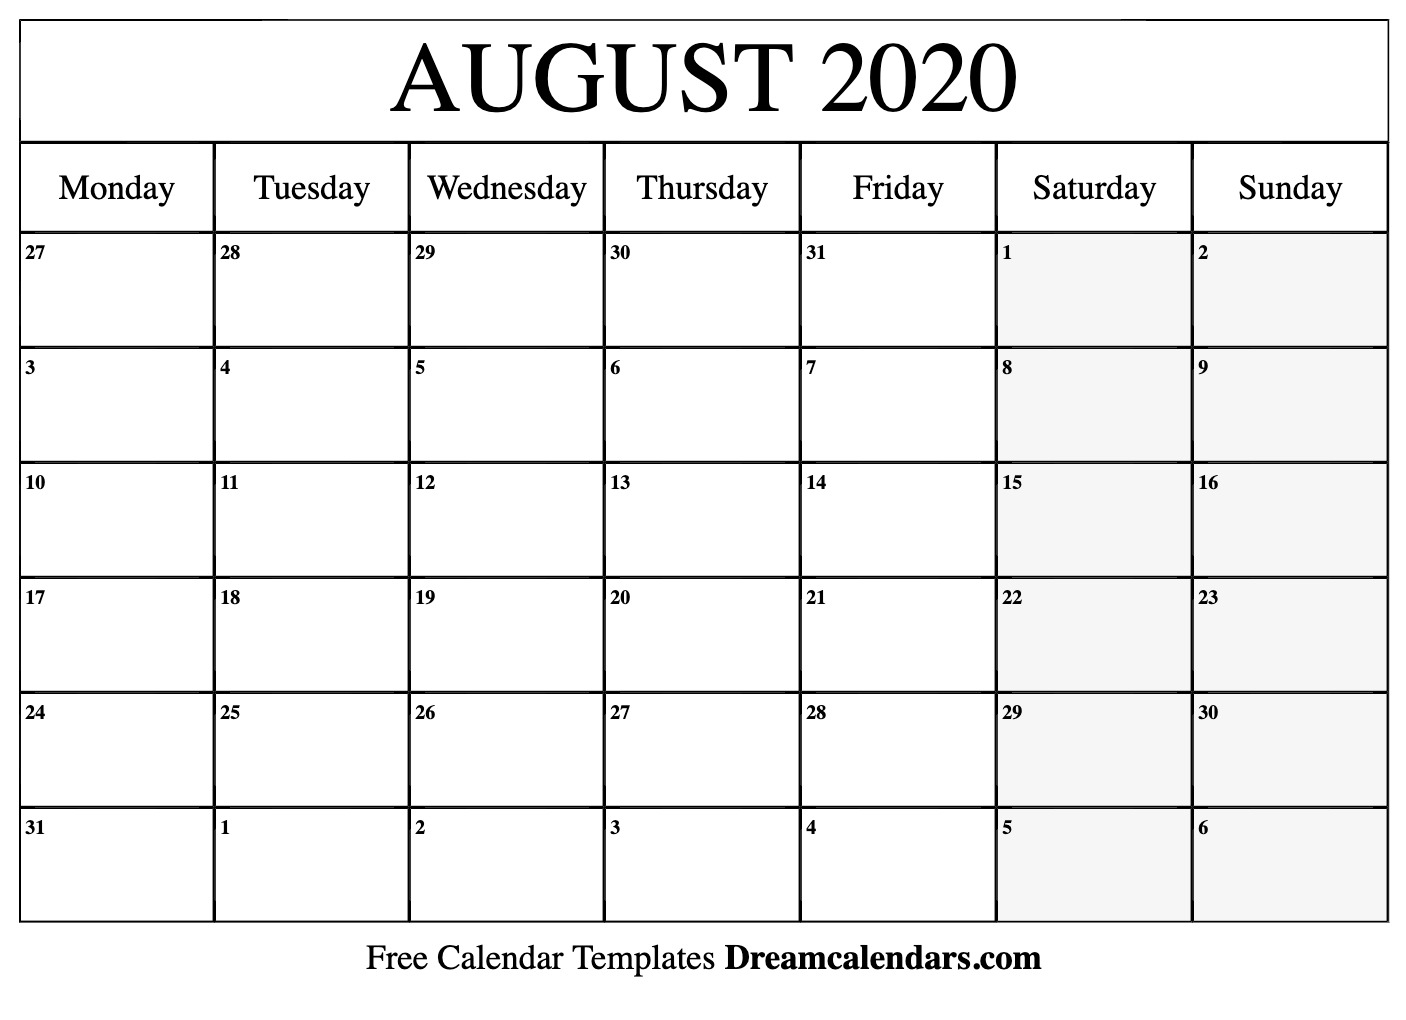 photo about Printable 2020 Calendar titled Ko-fi - Printable August 2020 Calendar - Ko-fi ❤️ The place